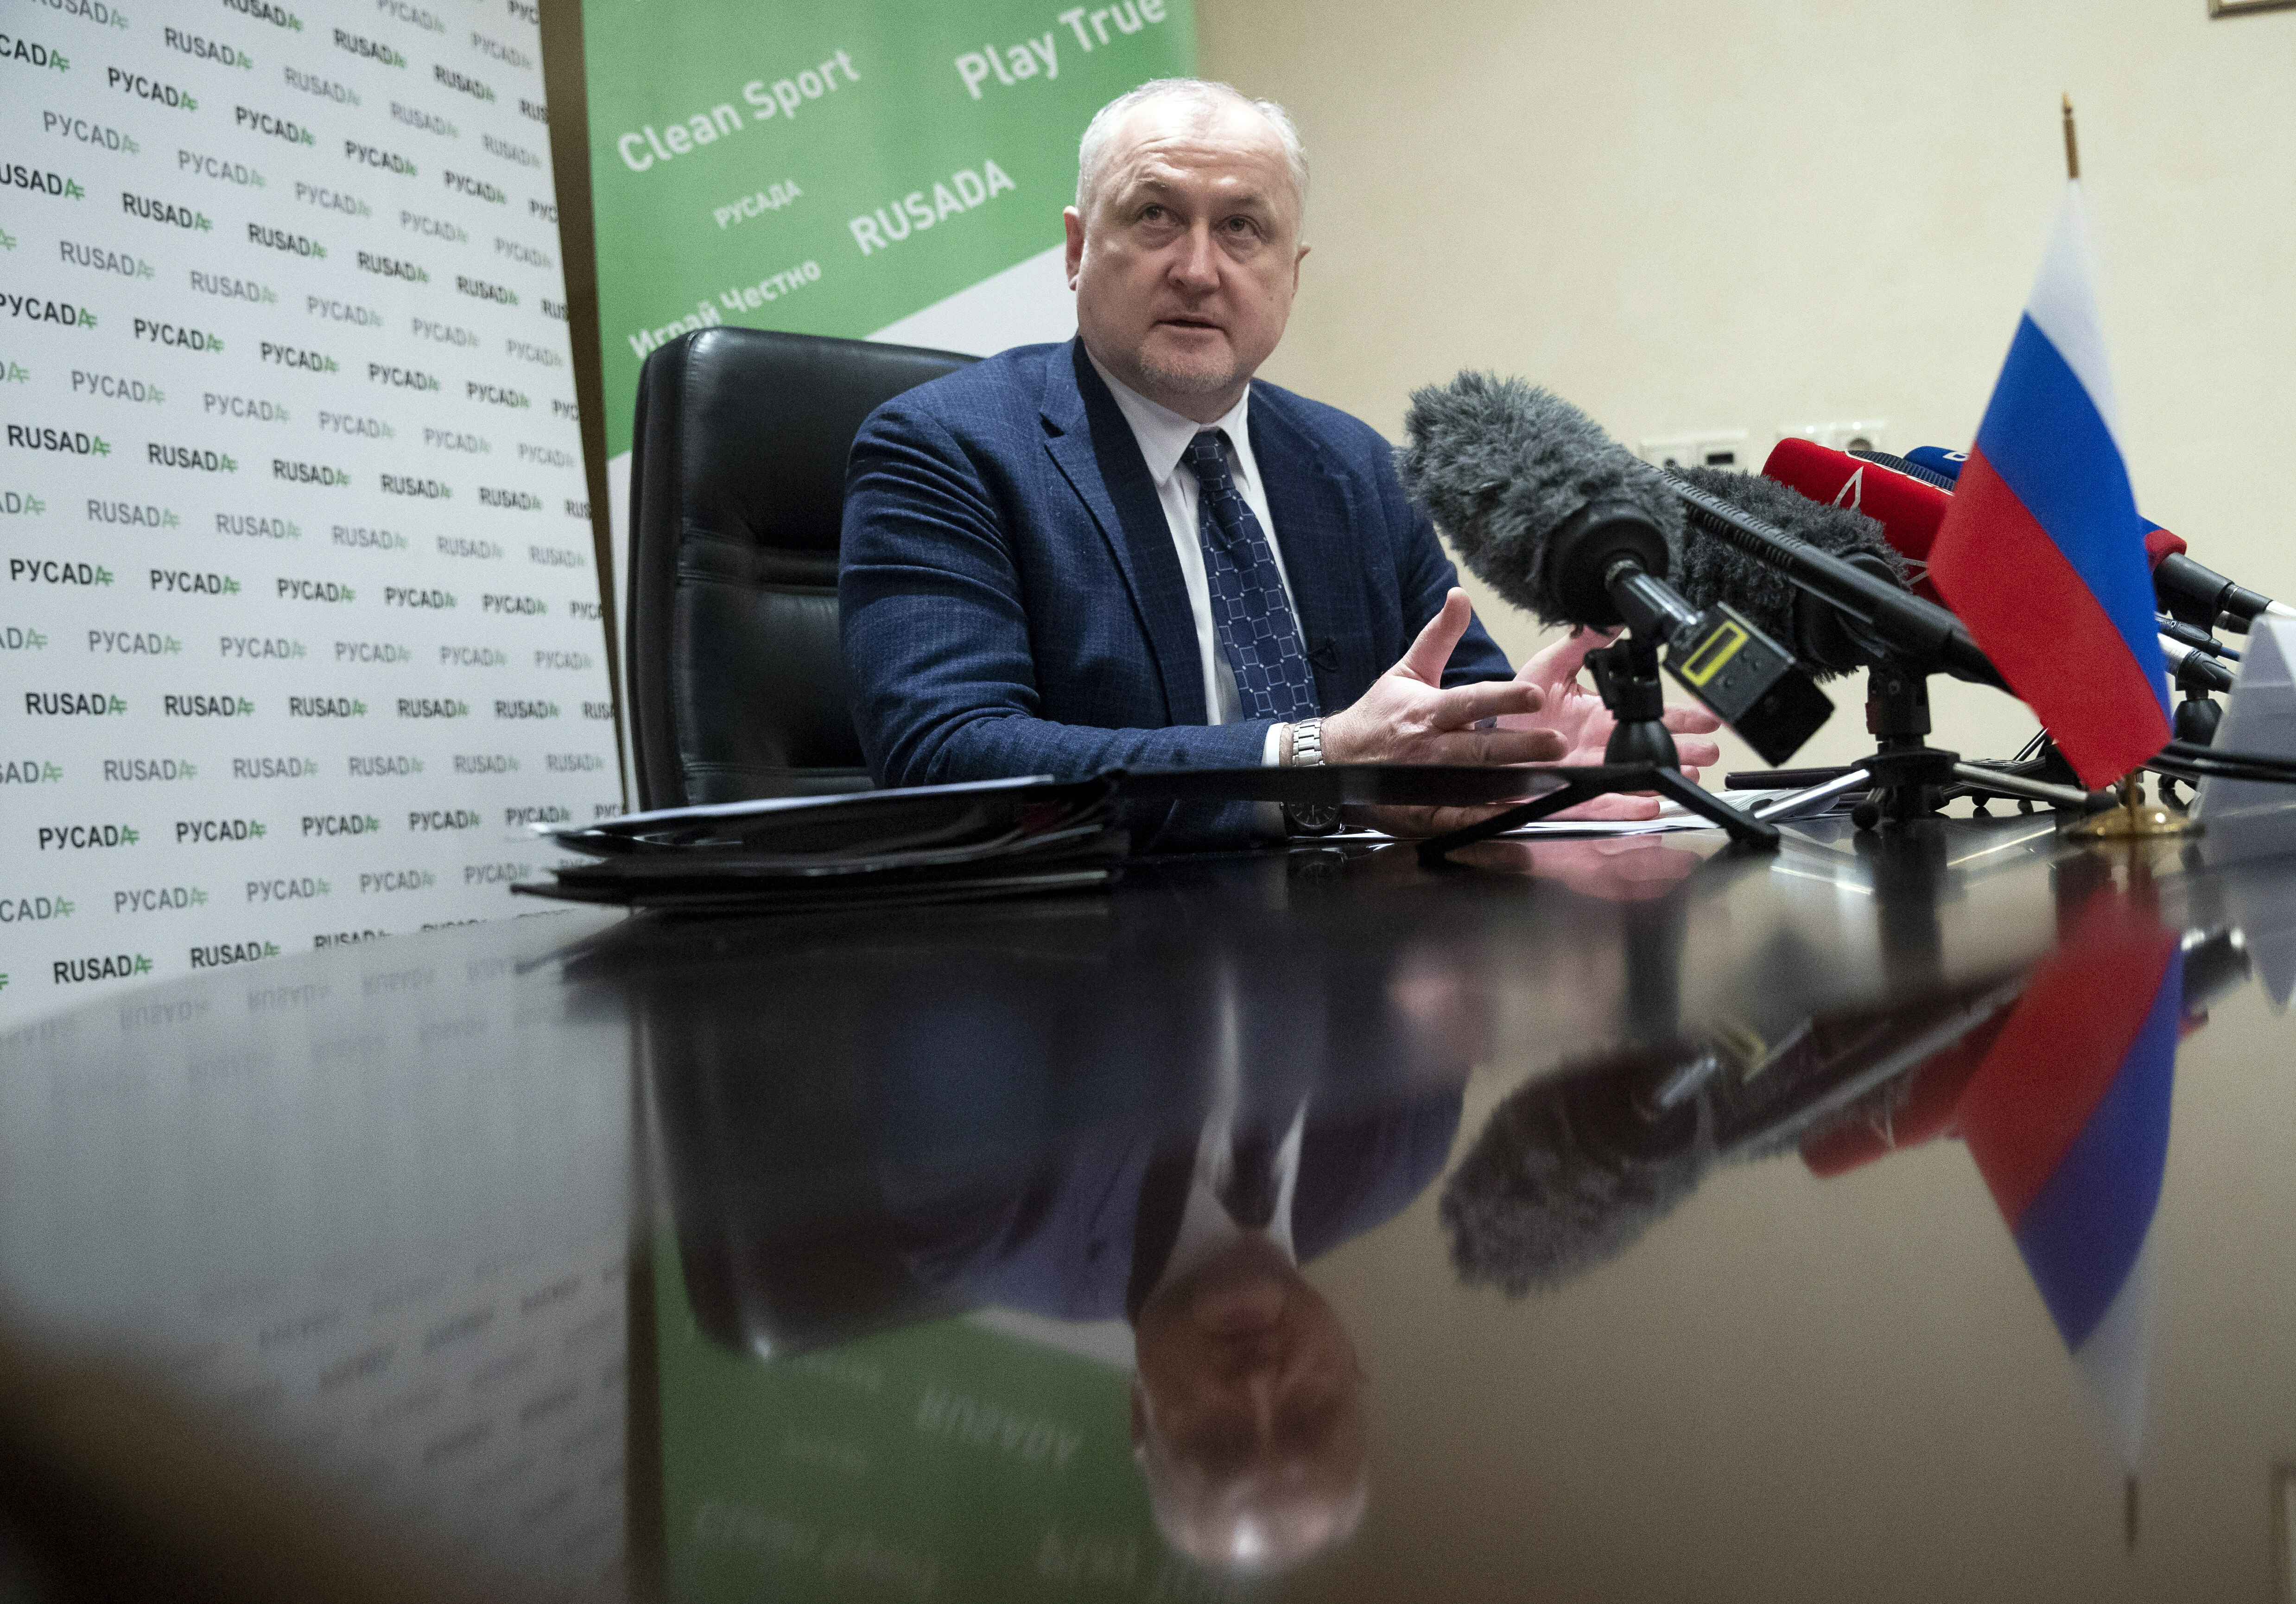 Russian National Anti-doping Agency RUSADA head Yuri Ganus speaks during a news conference in Moscow, Russia, Tuesday, Jan. 22, 2019.  World Anti-Doping Agency (WADA) forgave Russia on Tuesday for its tardiness in turning over lab data, but they are still analyzing what it says are vast amounts of data from lab servers and equipment, data which until recently was sealed off by Russian law enforcement. (AP Photo/Pavel Golovkin)